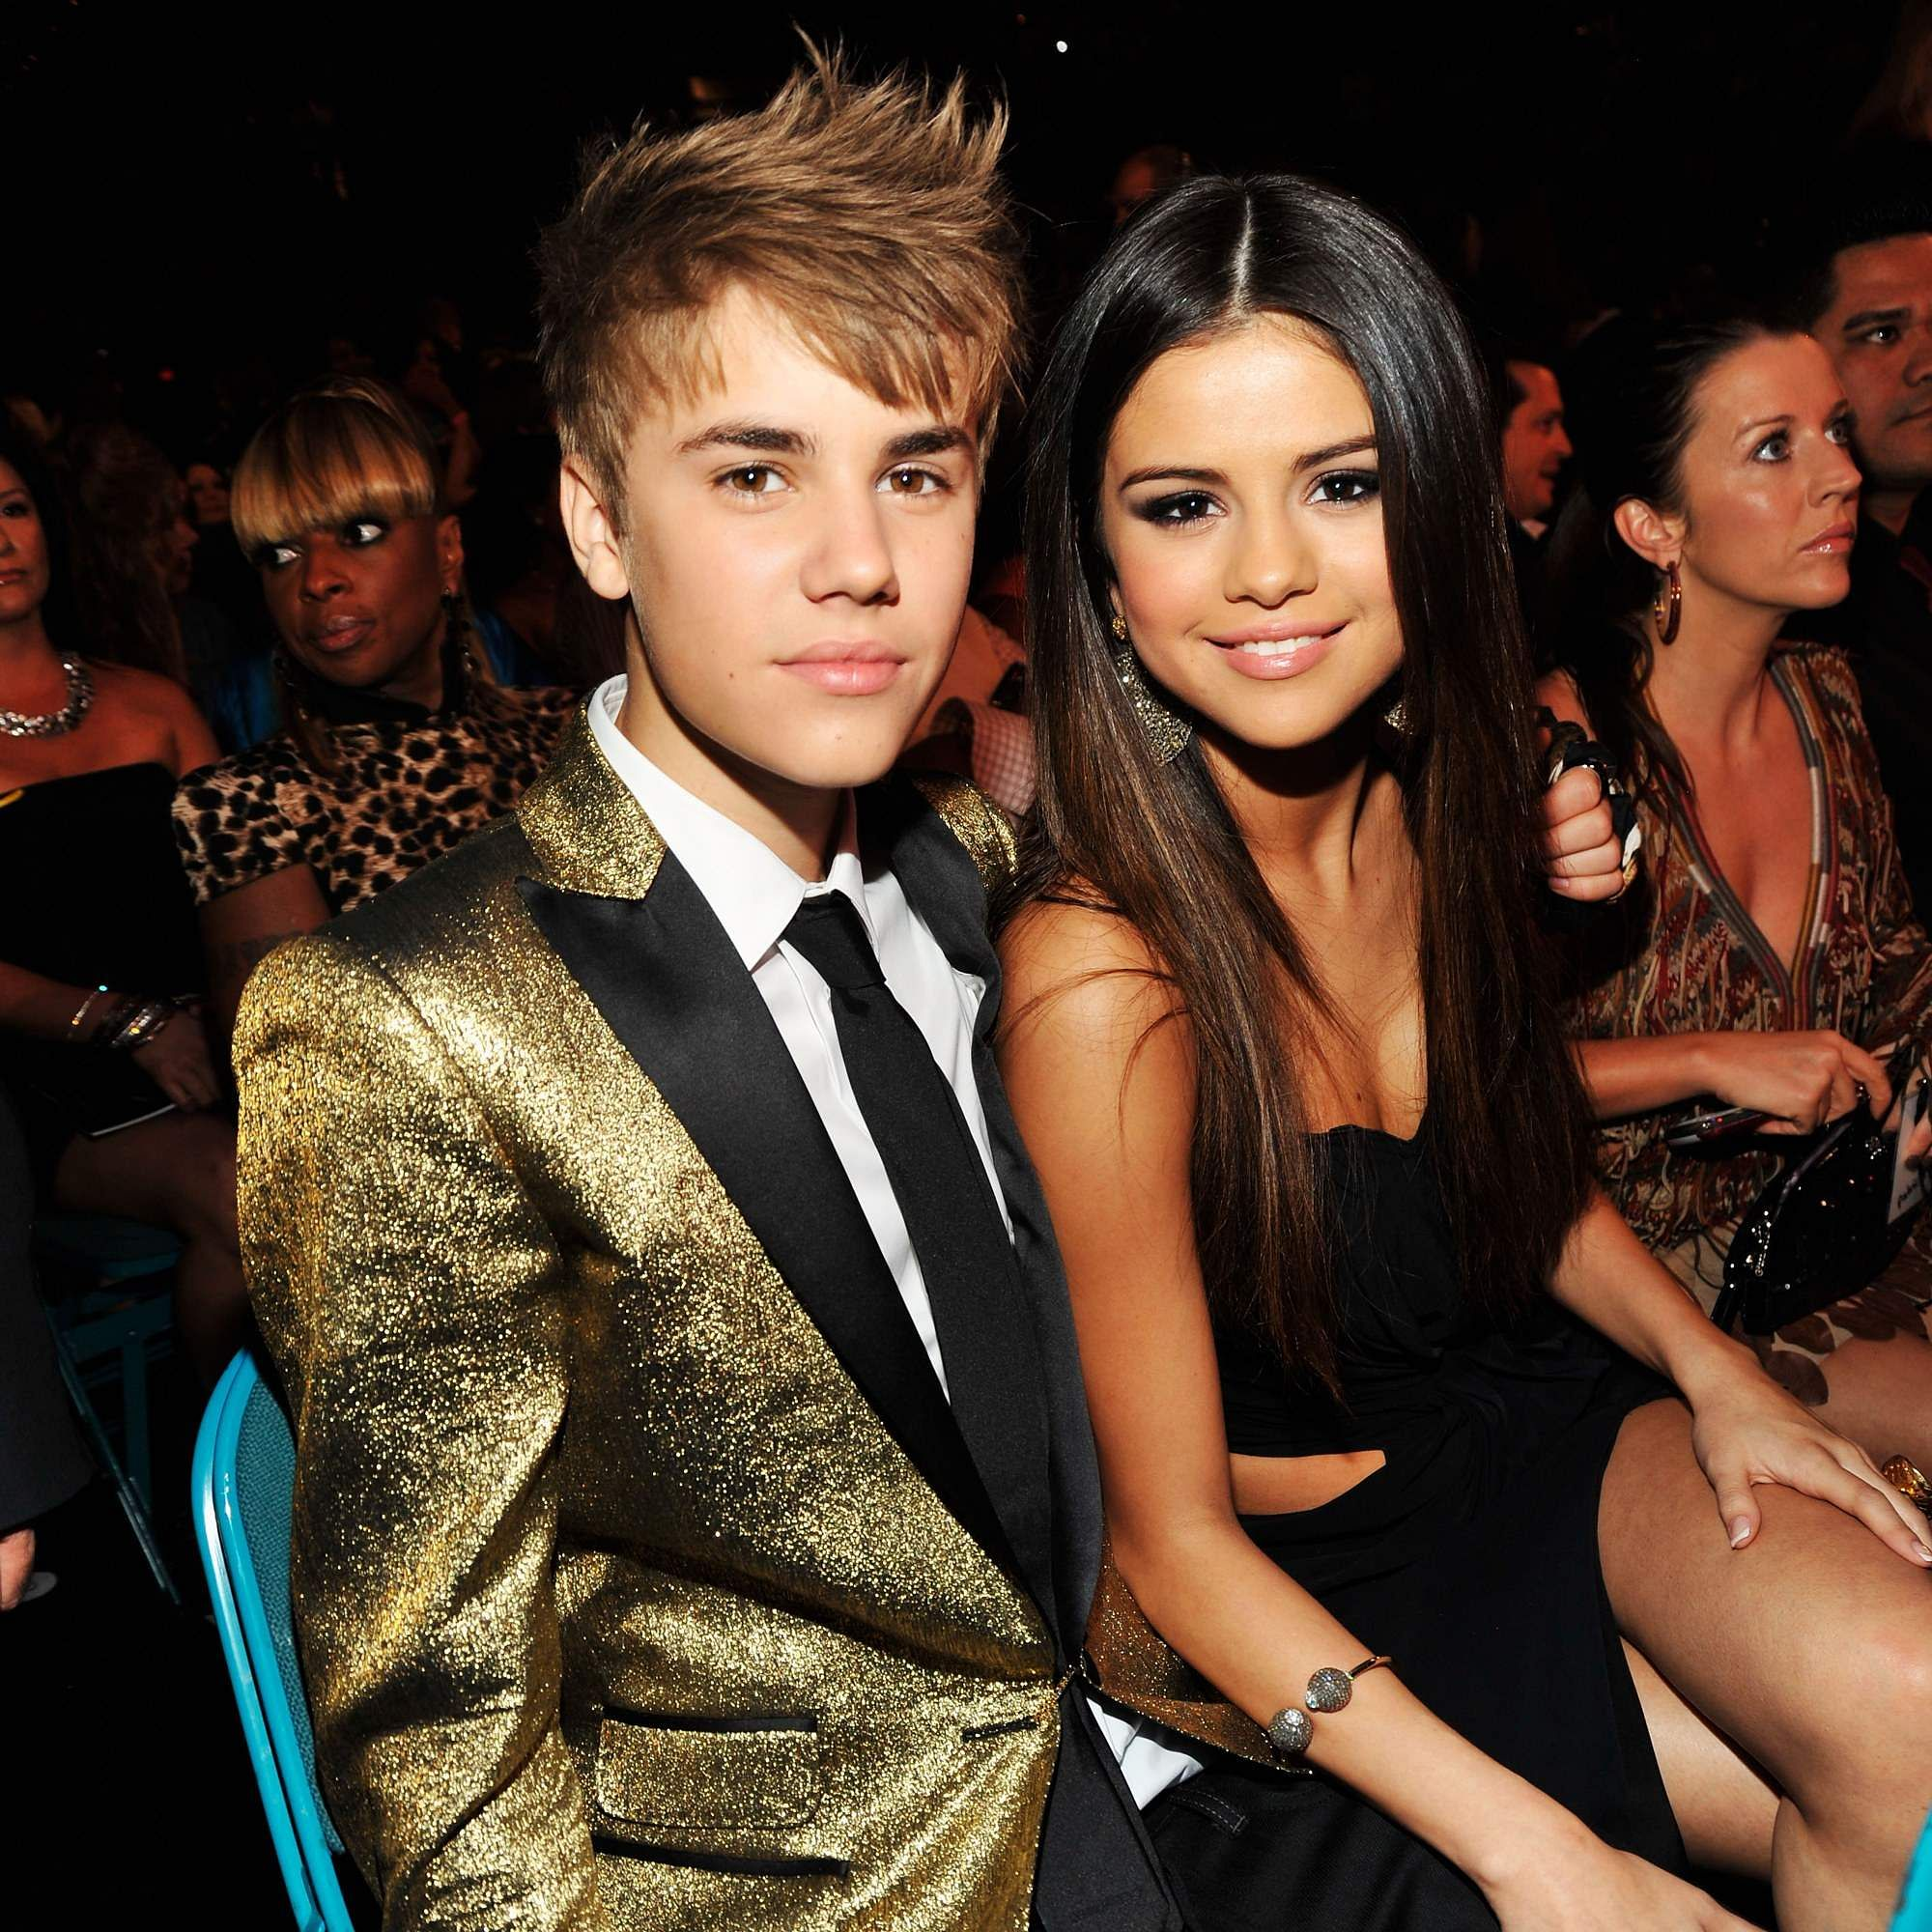 Selena Gomez and Justin Bieber's New Year's Eve Together: What We Know